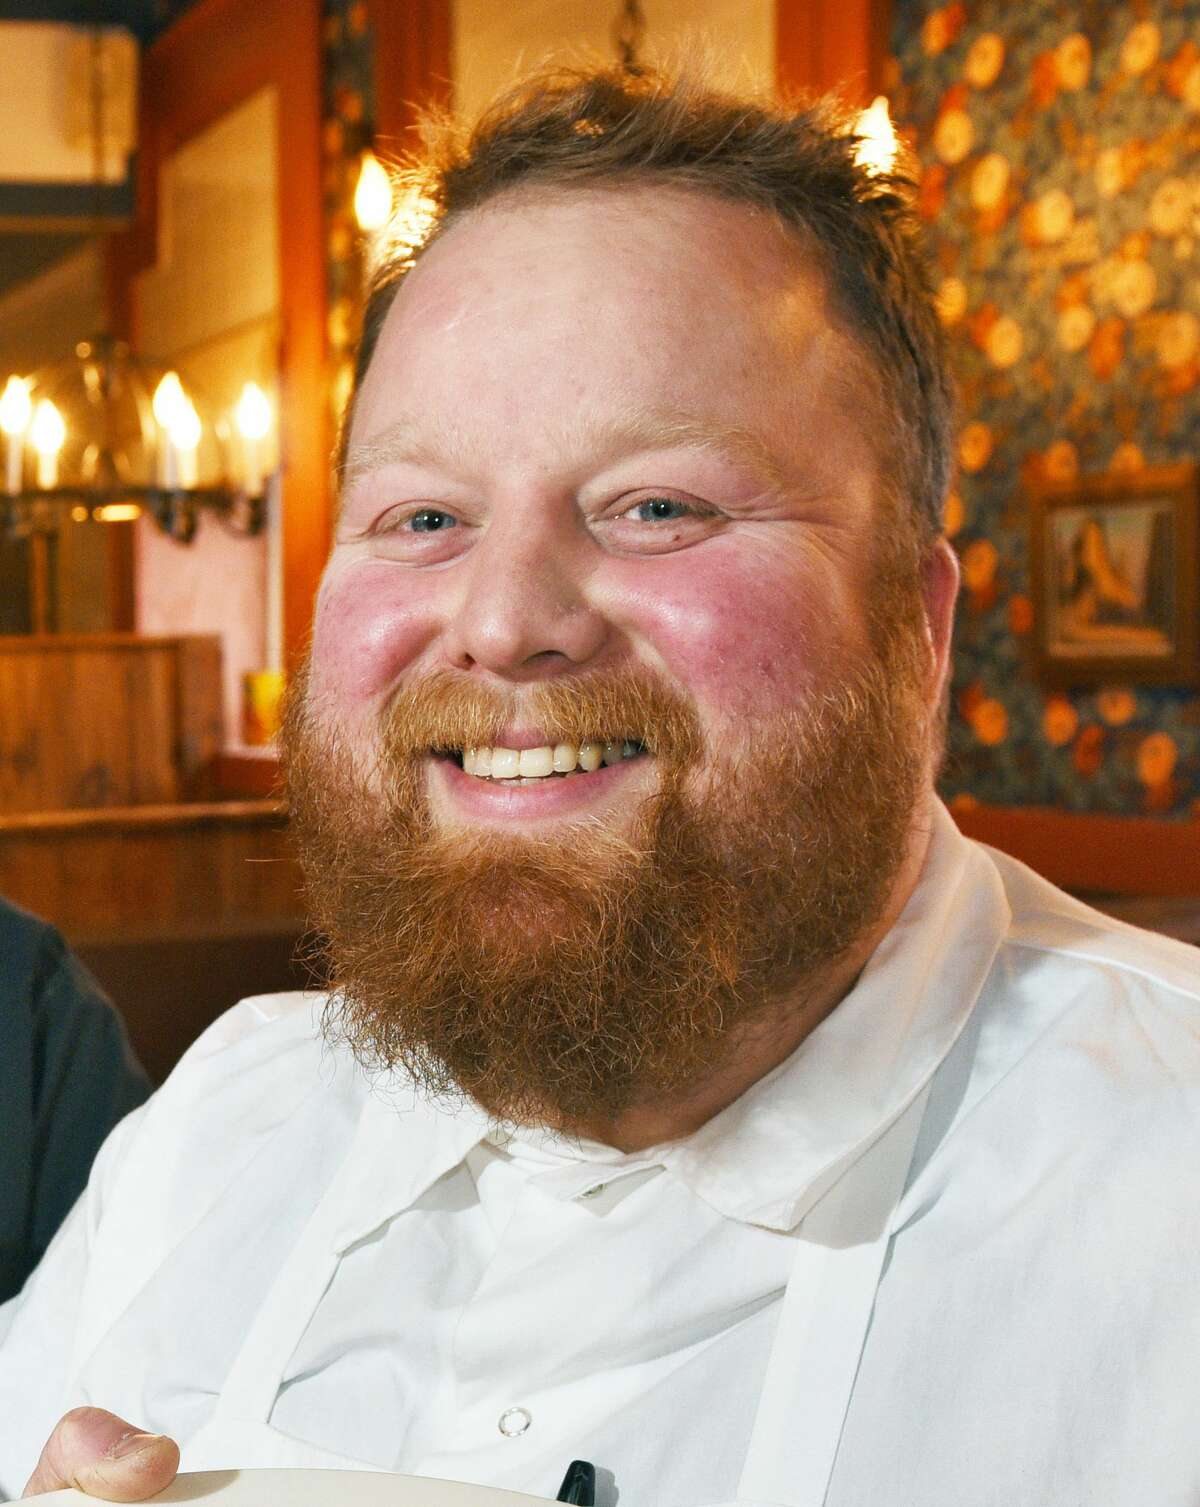 Ian Brower, most recently of Lost & Found Kitchen & Bar in Albany, is the new executive chef of New World Bistro Bar in Albany. (File photo.)